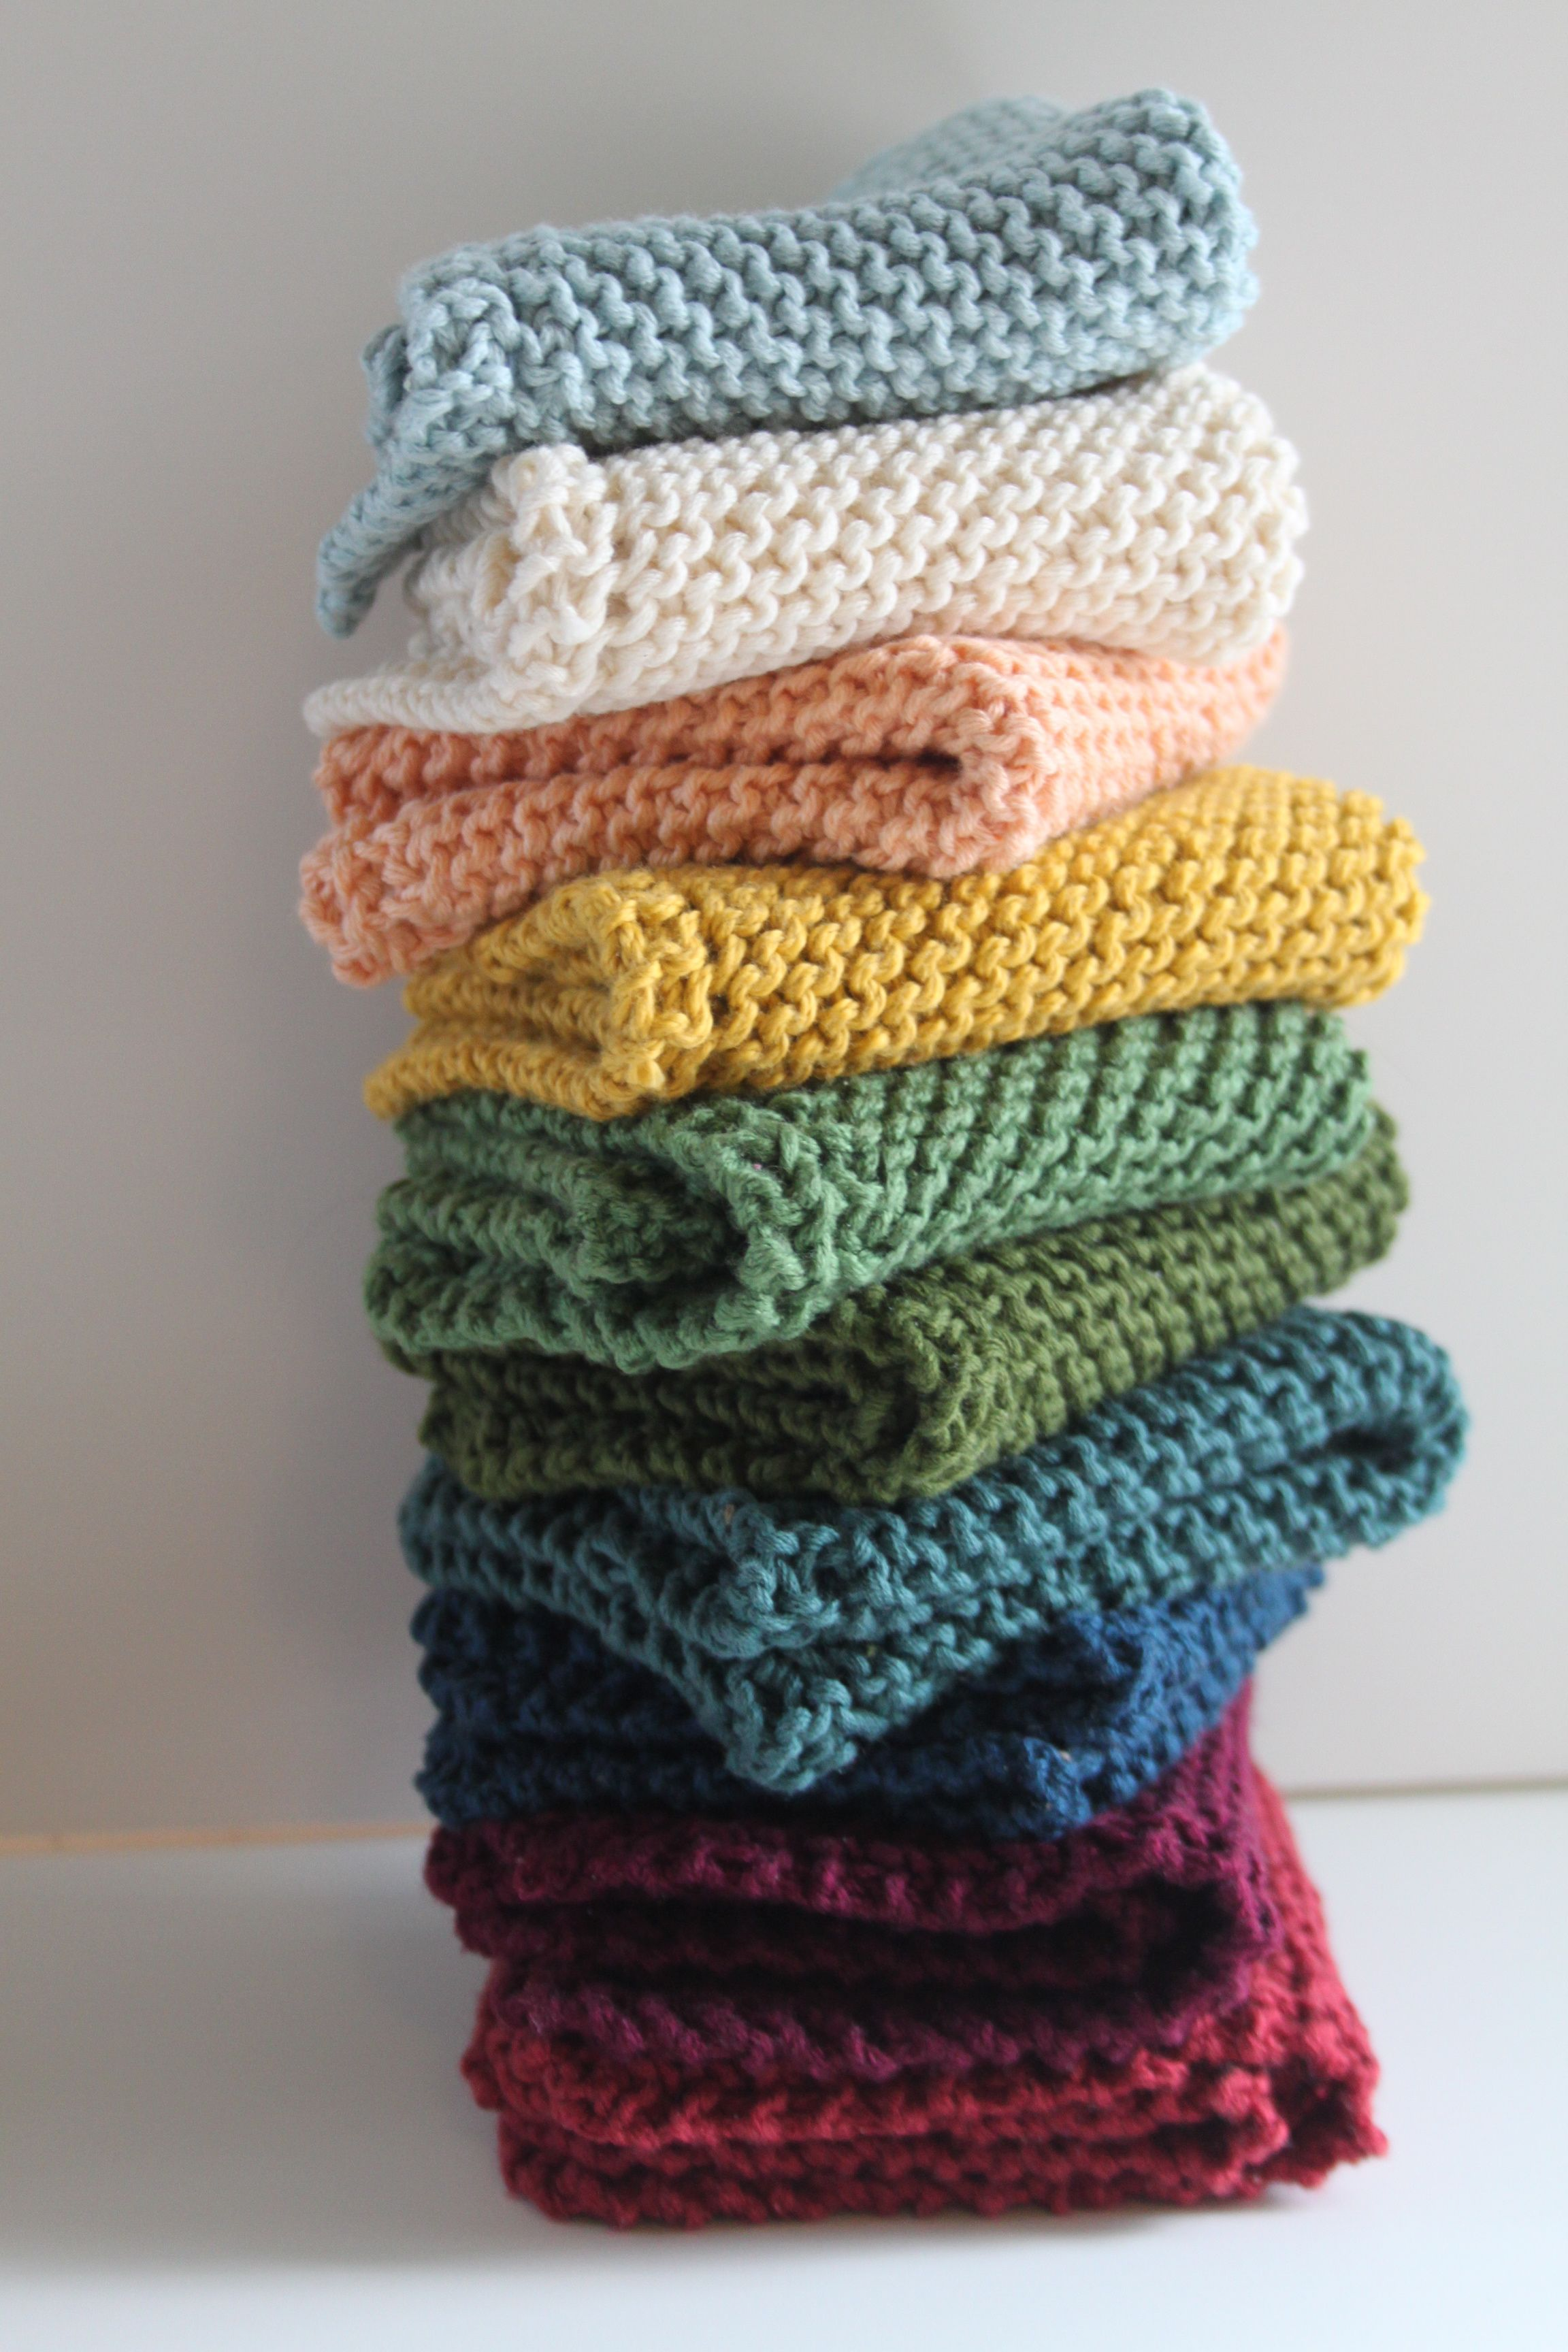 Stack without crochet